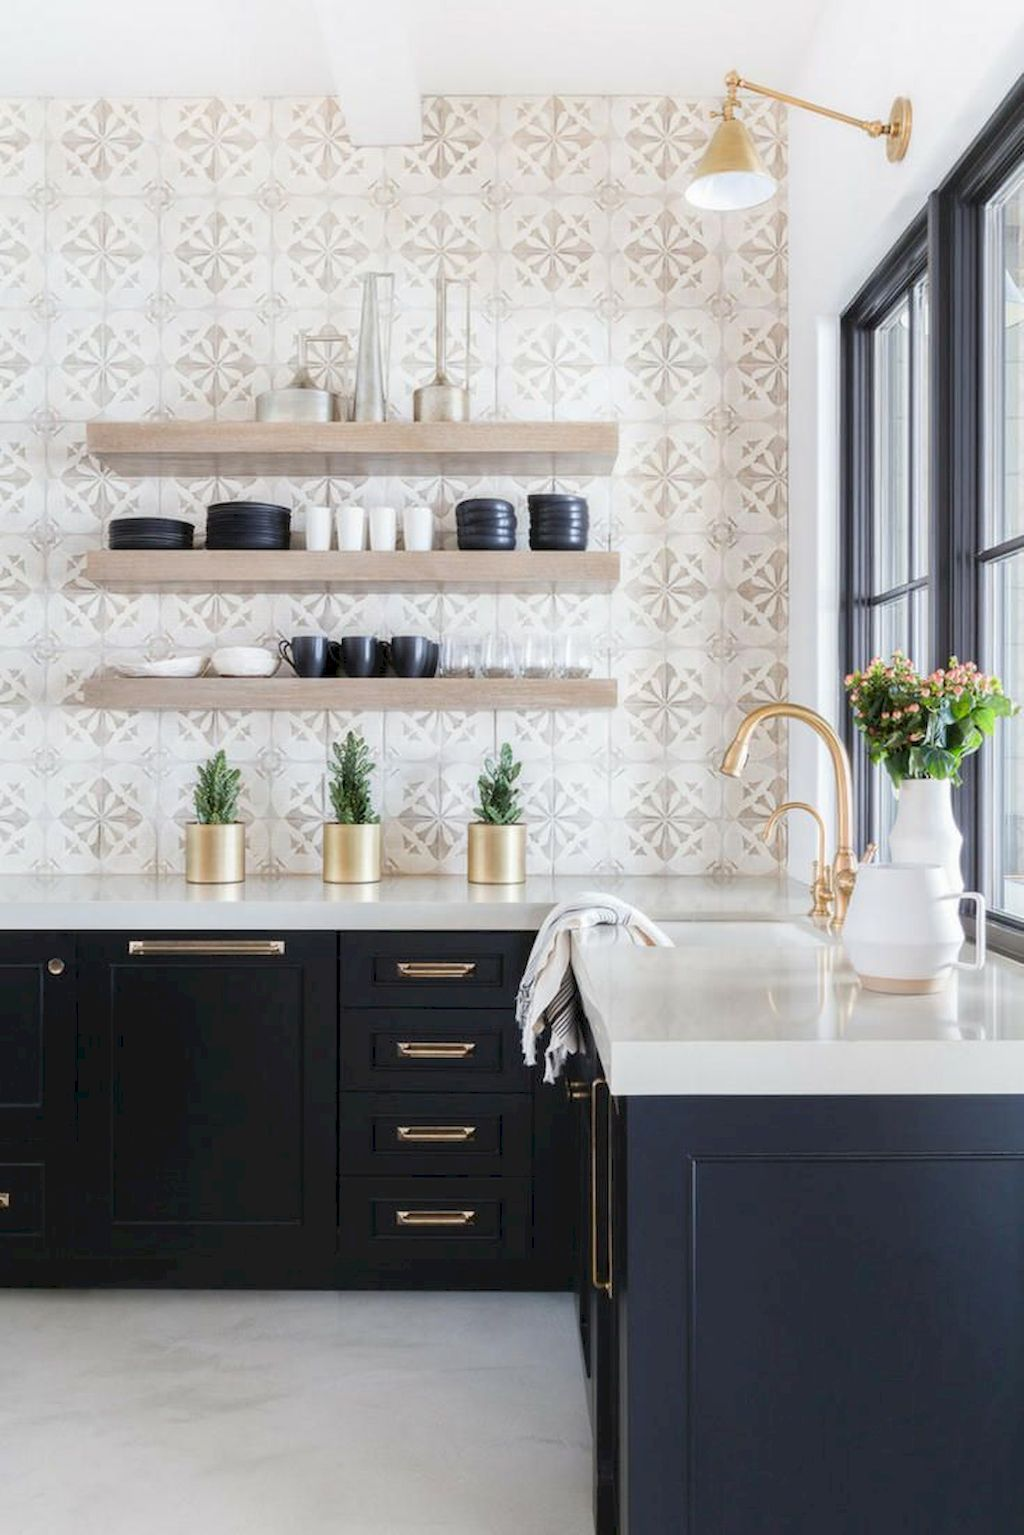 75 beautiful farmhouse kitchen backsplash design ideas home decor kitchen kitchen modern on farmhouse kitchen backsplash id=47495